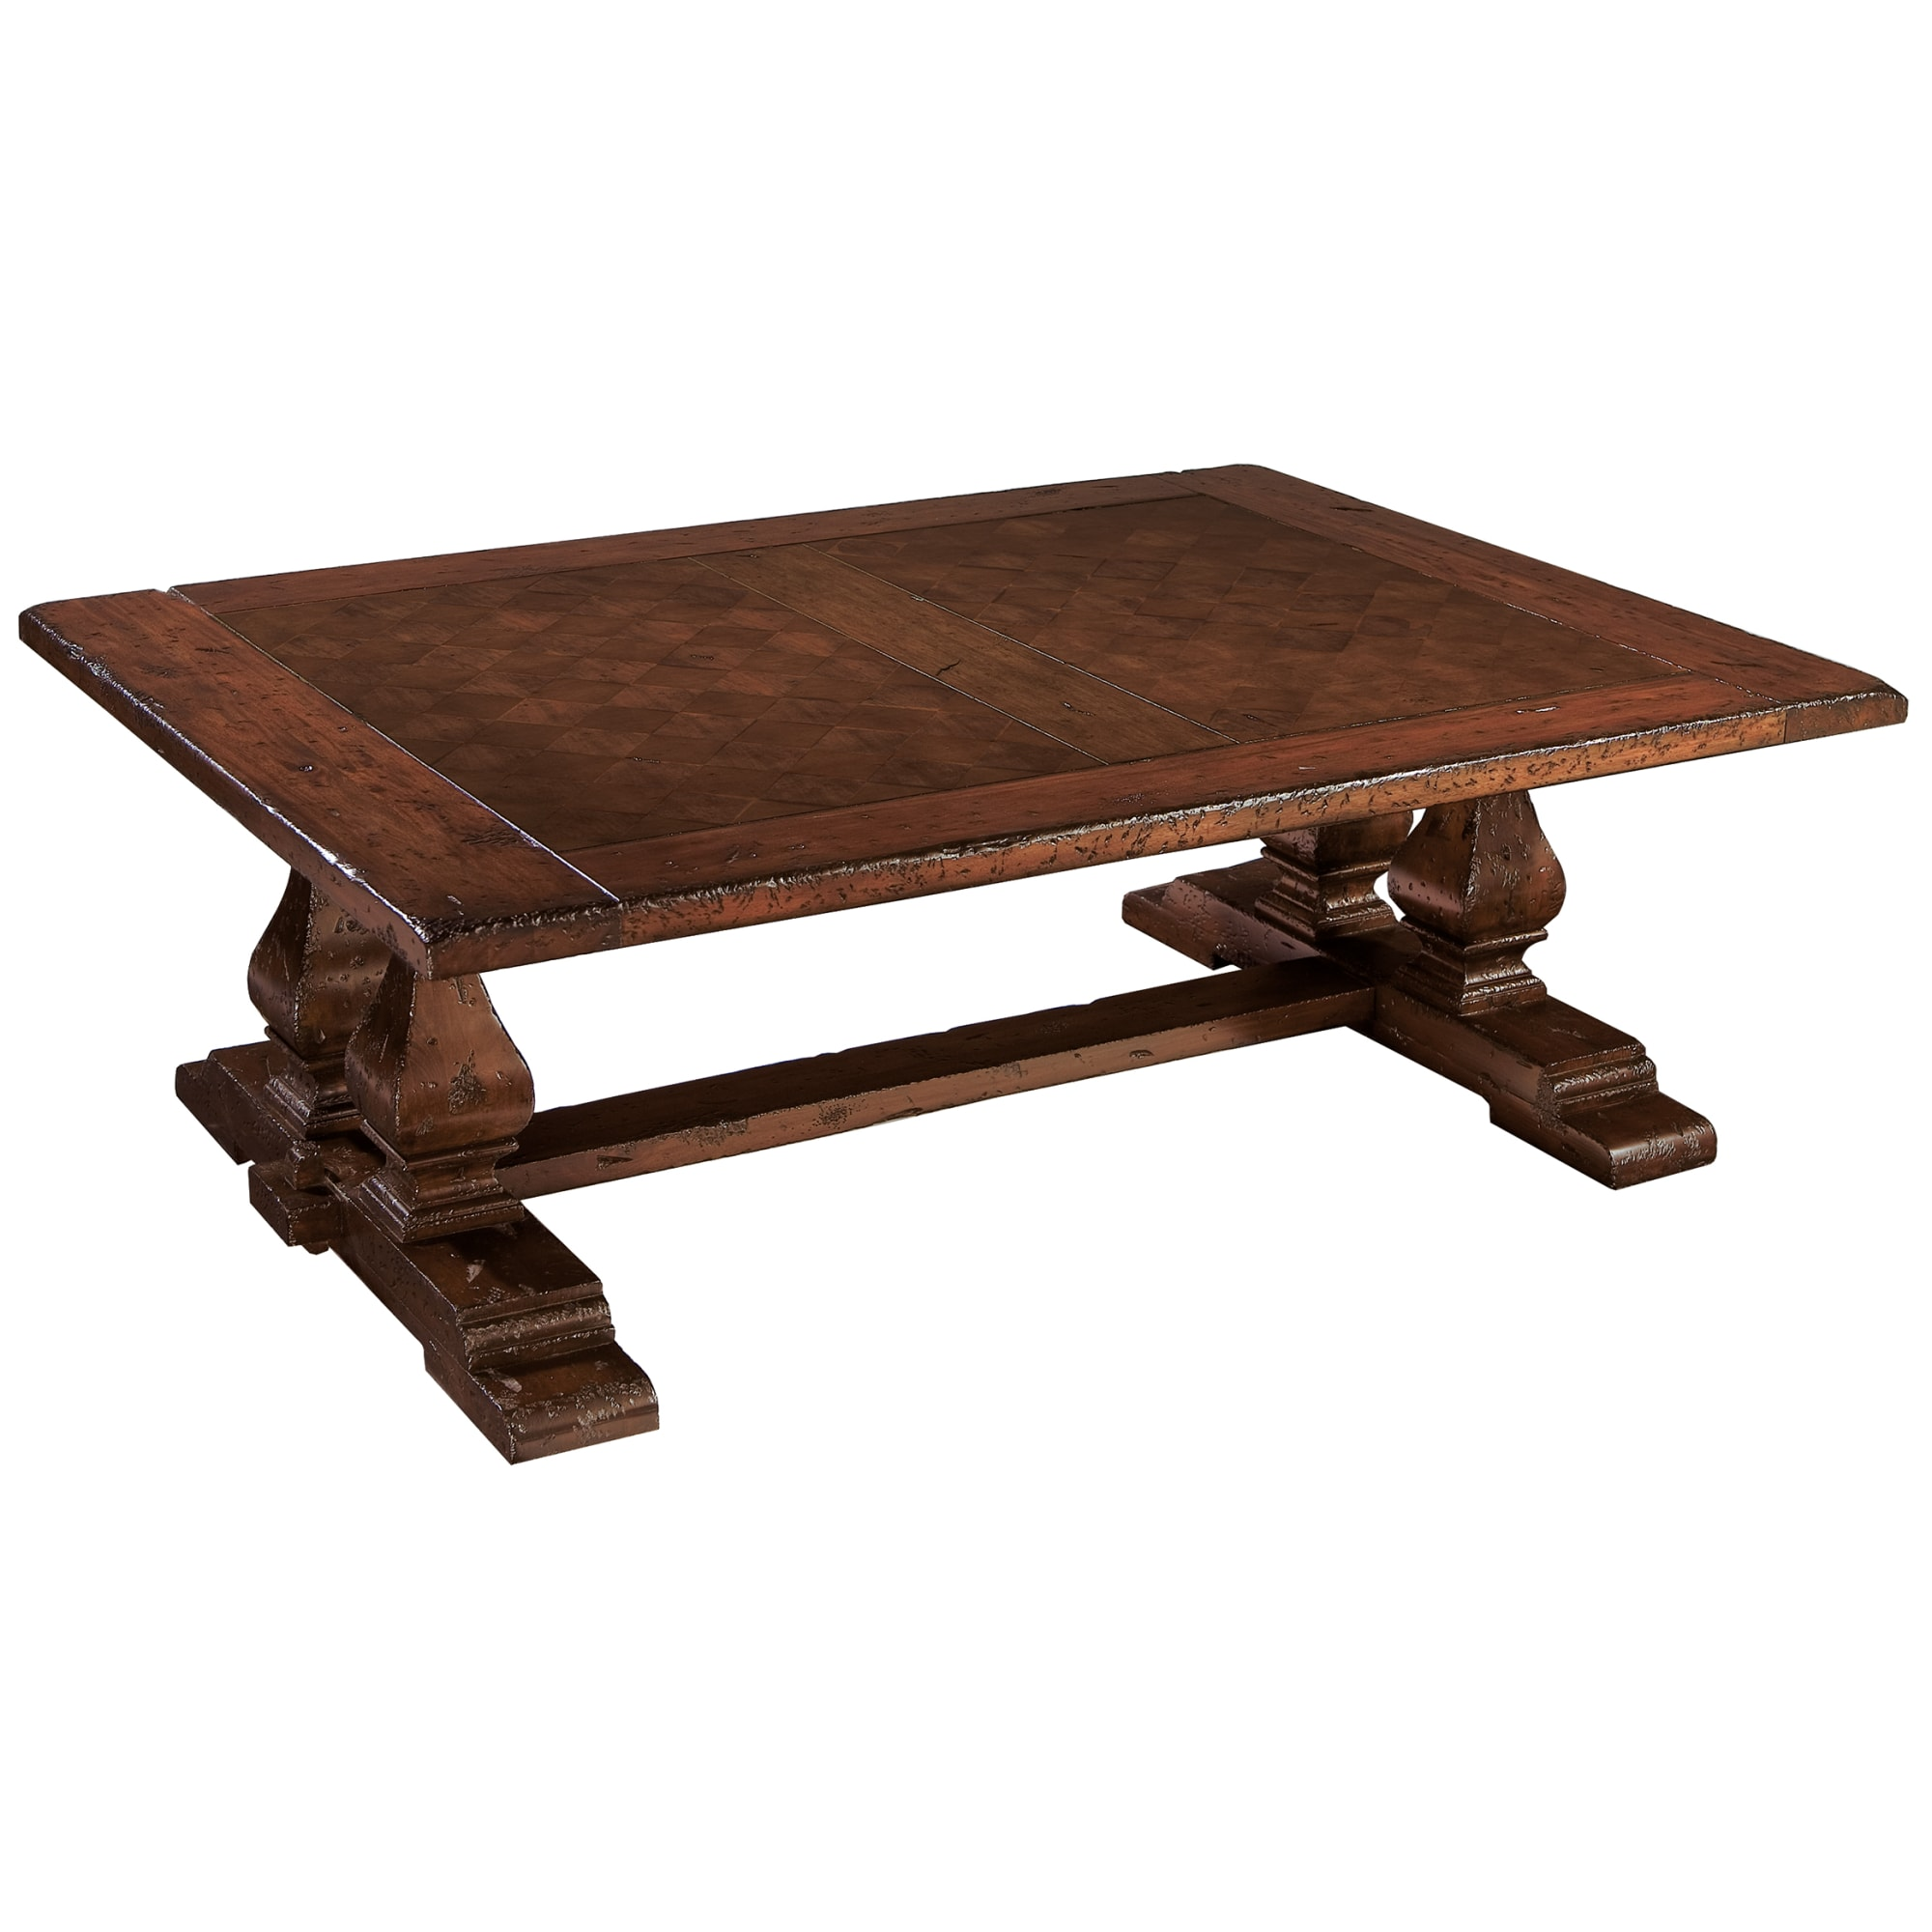 Image for 8-1217 Havana Servant Coffee Table from Hekman Official Website